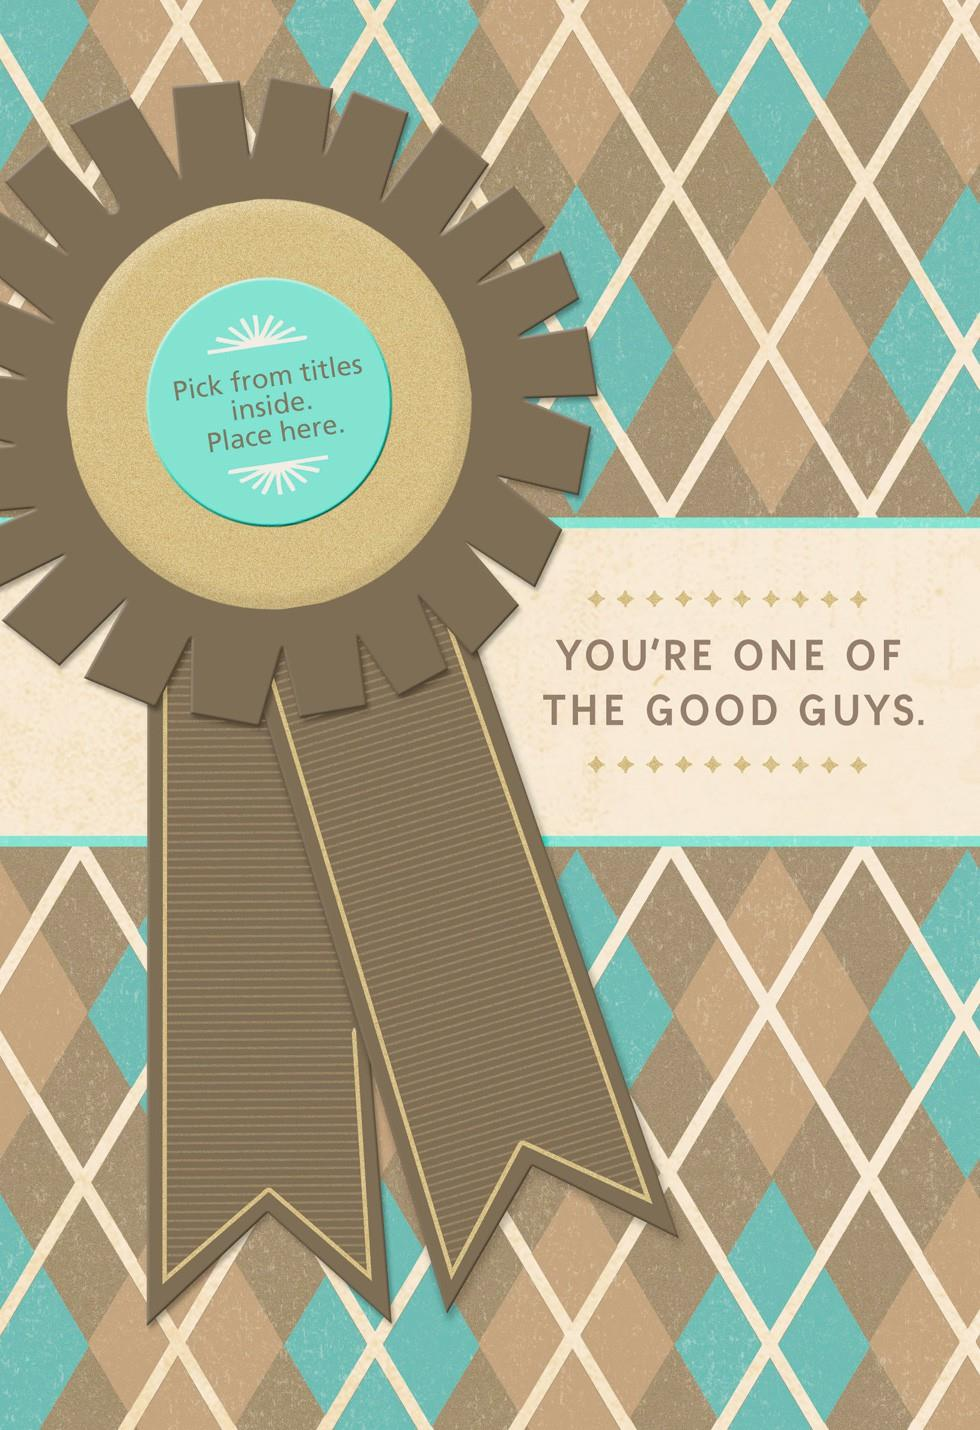 Good Guy Award Fathers Day Card For A Grandfather Hallmark